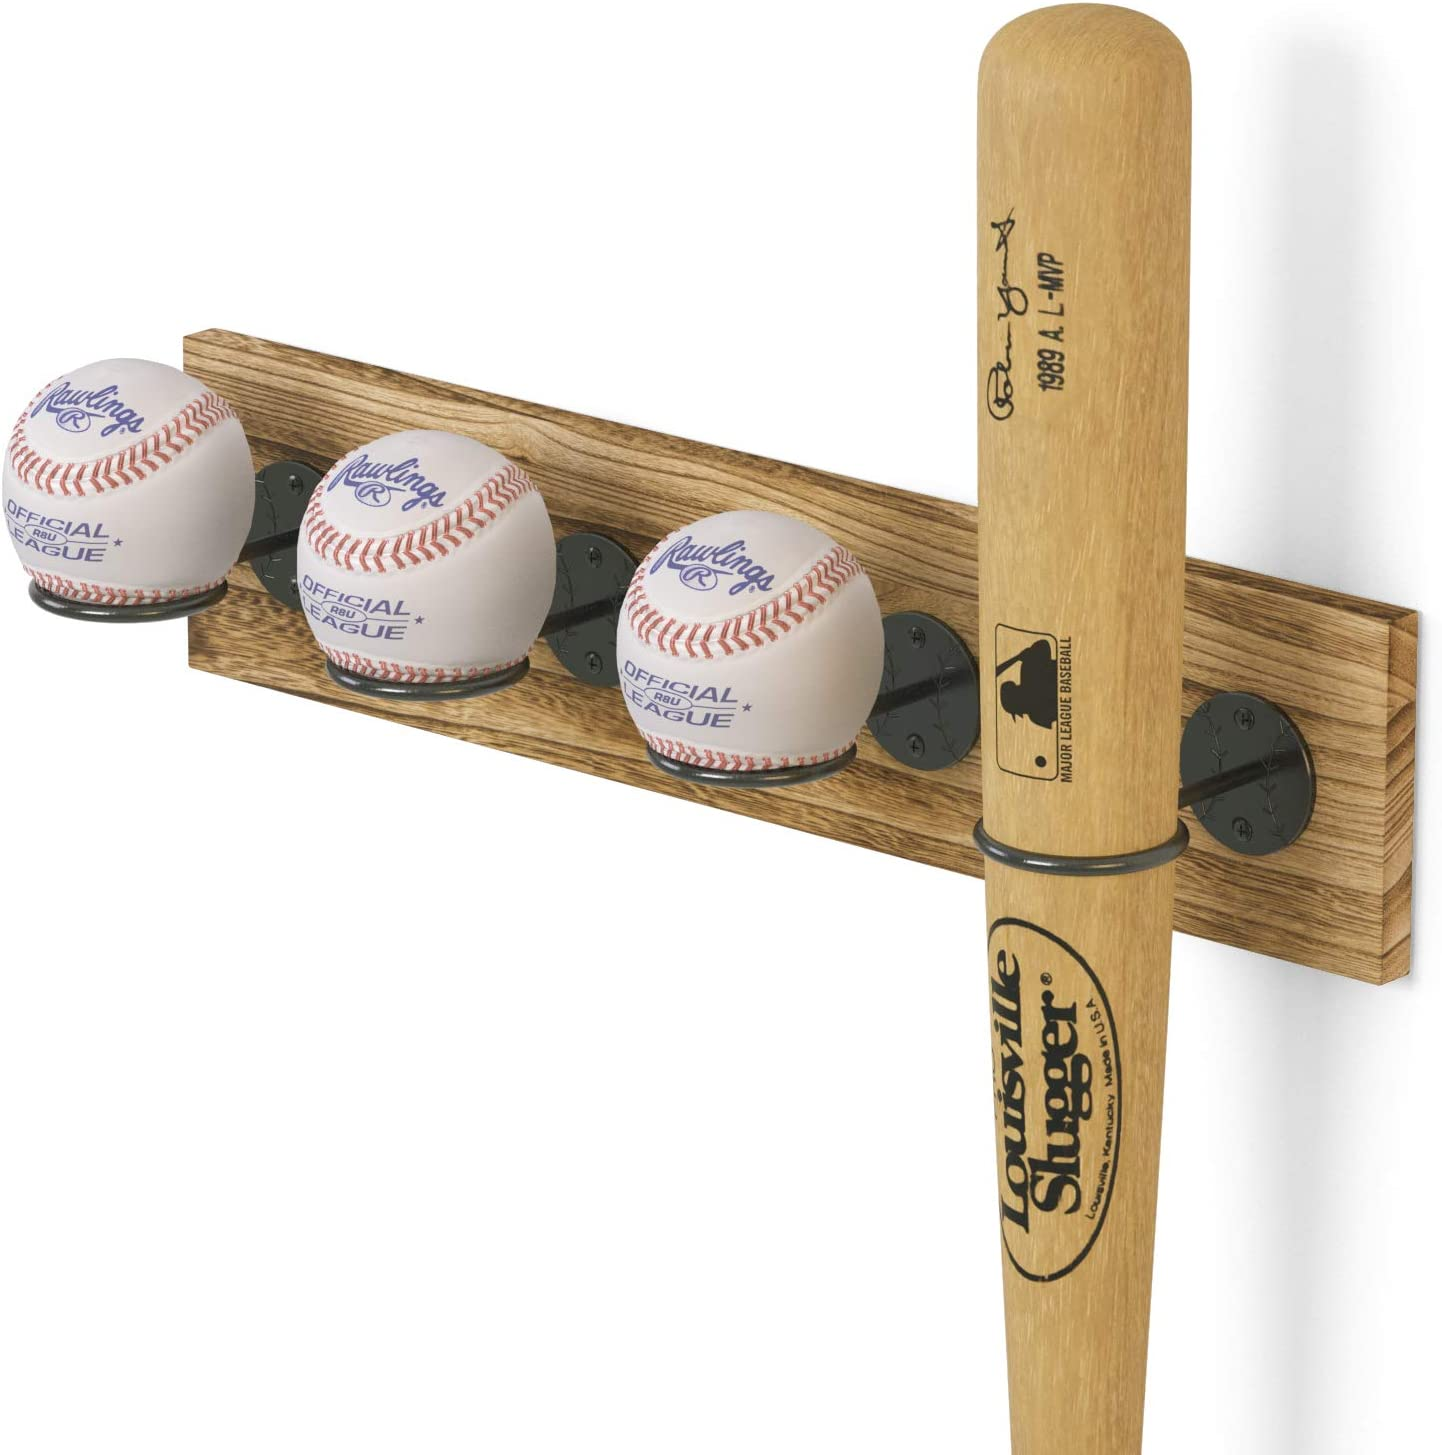 Wallniture Sporta Wood Baseball Bat and Ball Holder Wall Mount Display Stand for Man Cave, 4 Sectional Wall Shelf for Sports Memorabilia